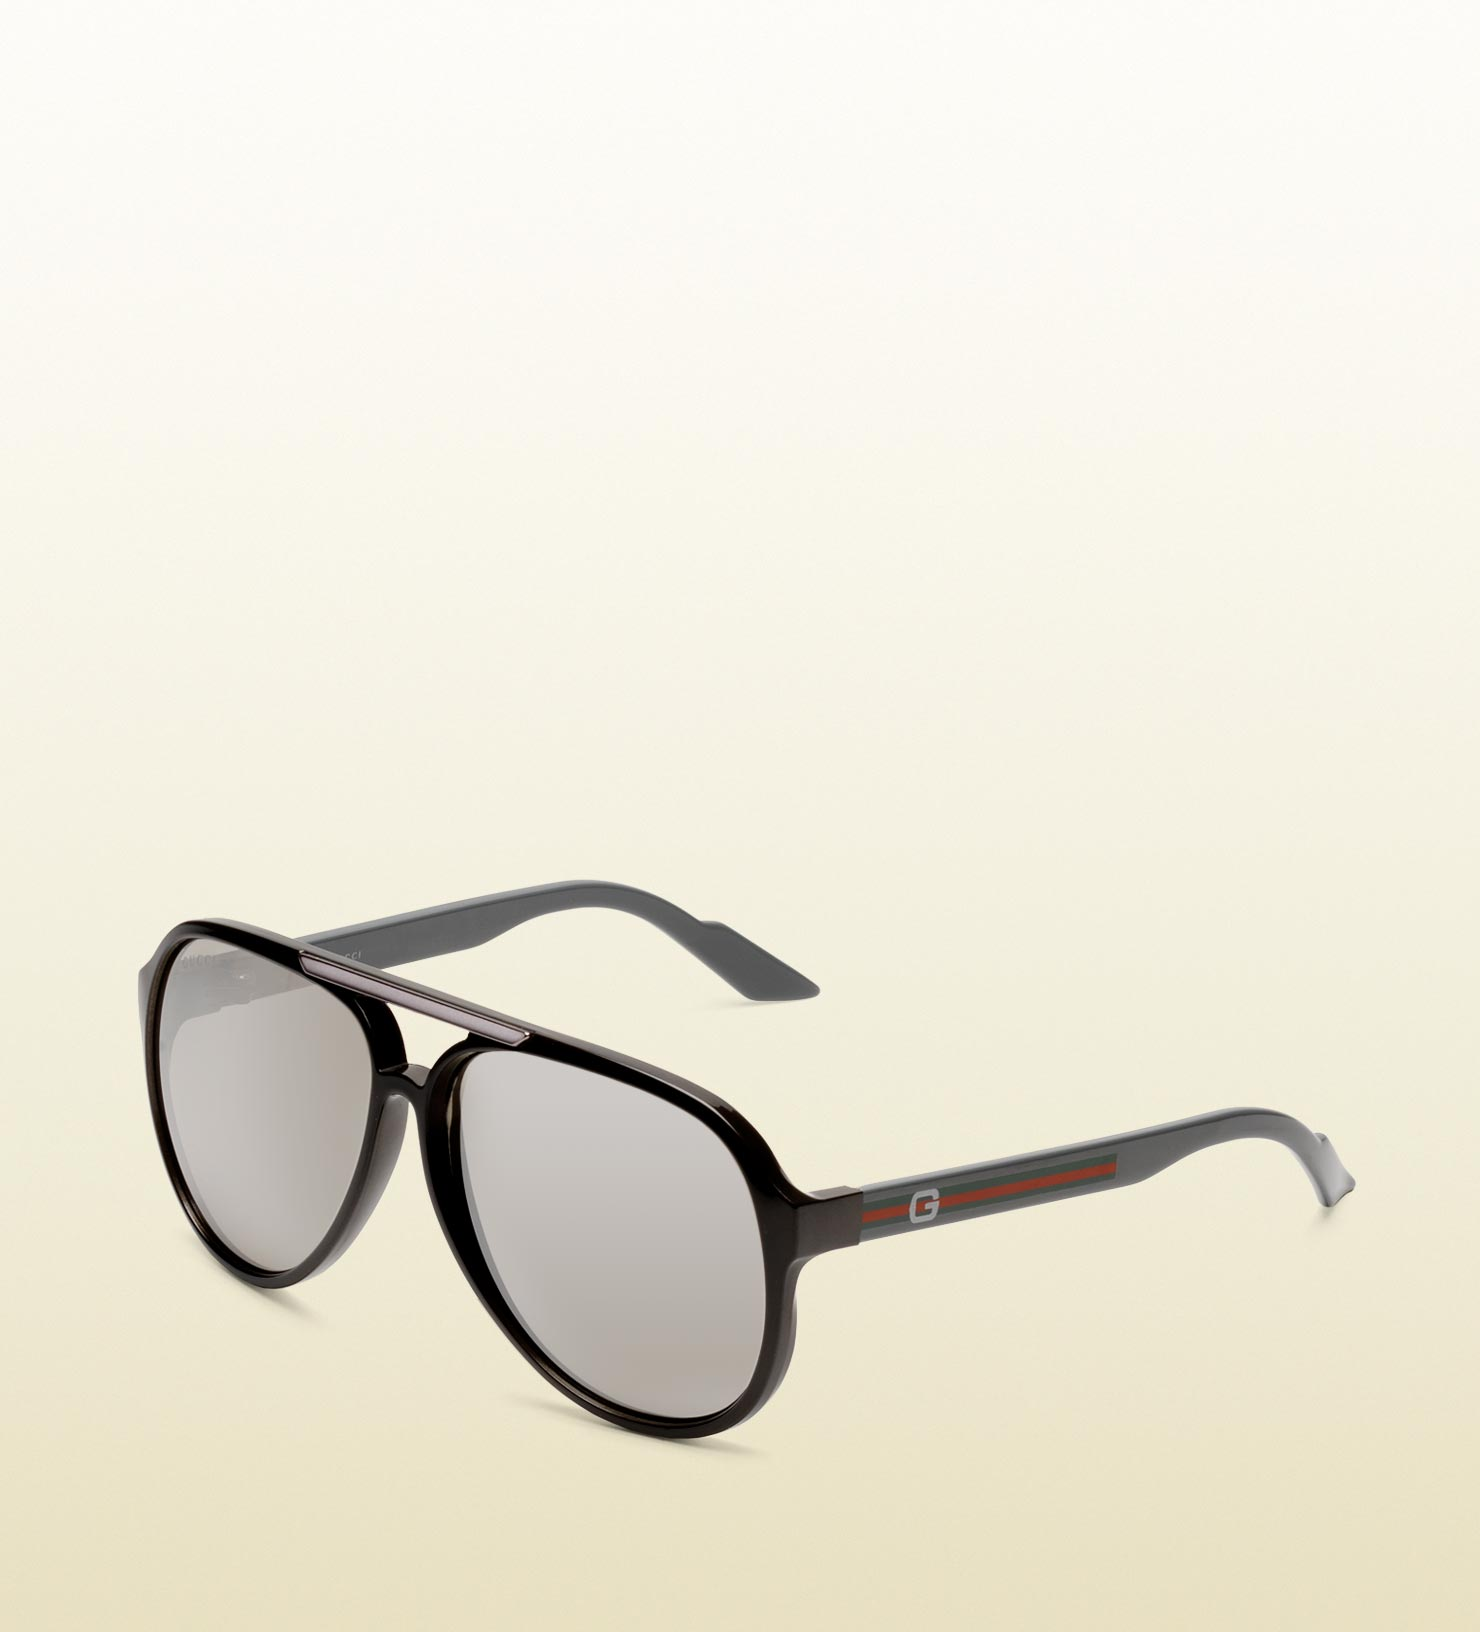 5d21a6628e3 Lyst - Gucci Medium Aviator Sunglasses with G Detail and Signature ...